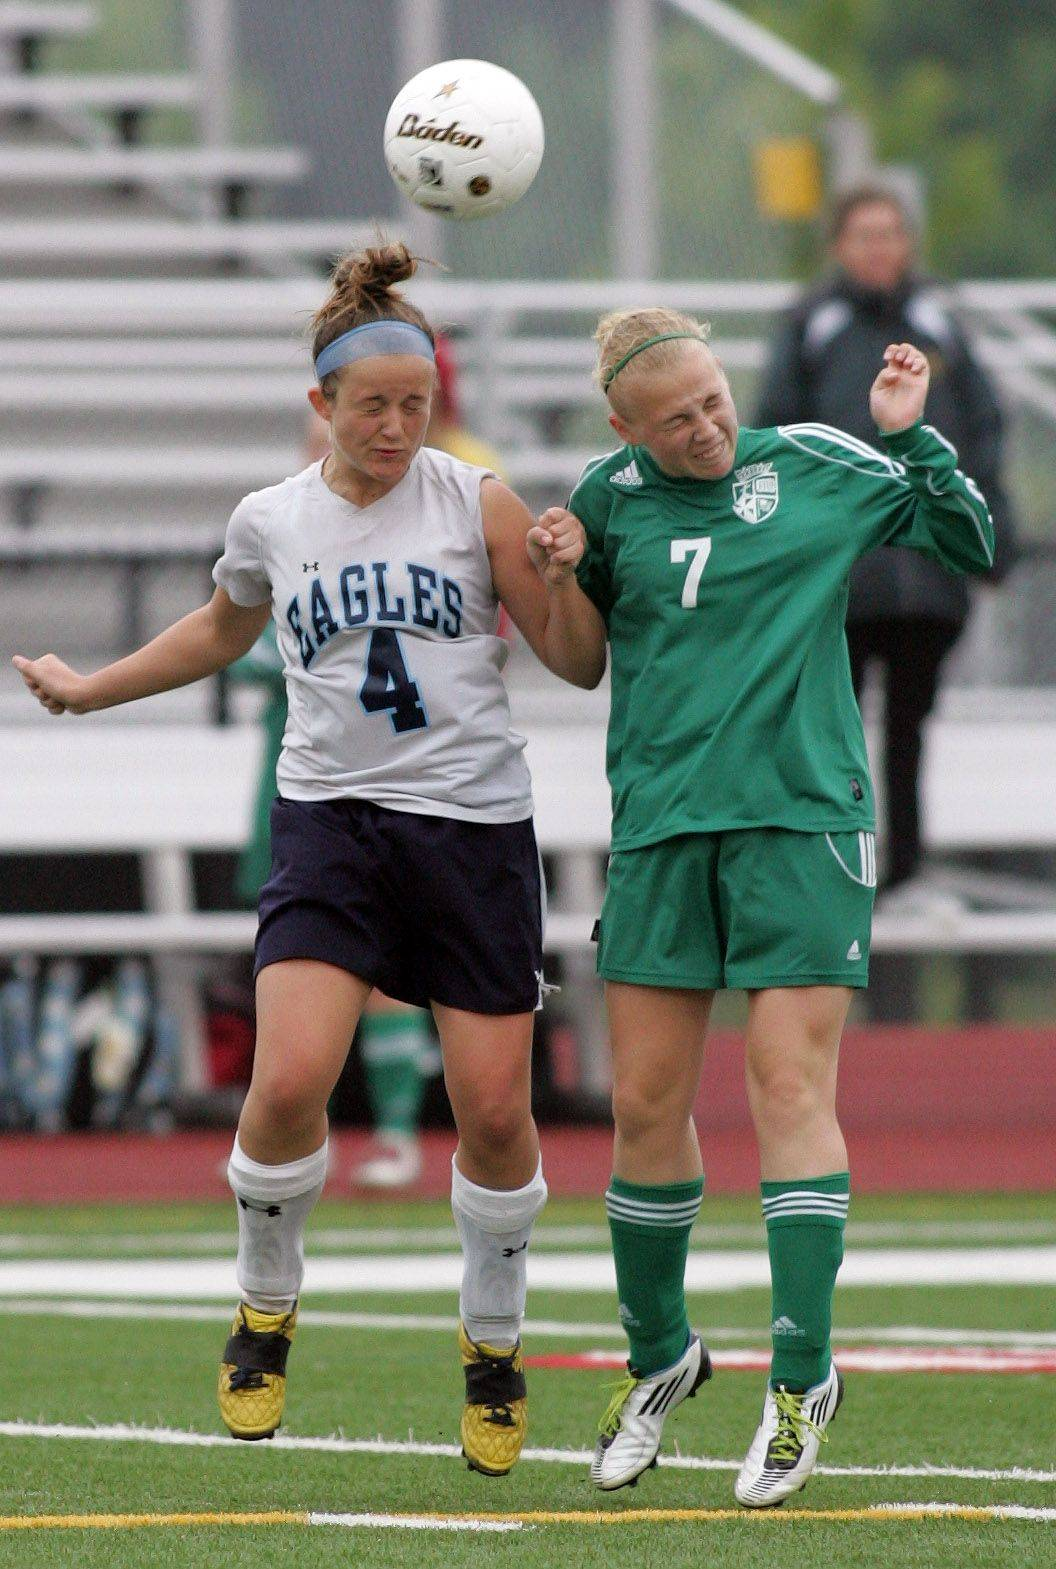 Justine Burgraff, left of Willows Academy and Kimmy Smith, right, of St. Edward in the Class 1A state soccer third place match in Naperville on Saturday.